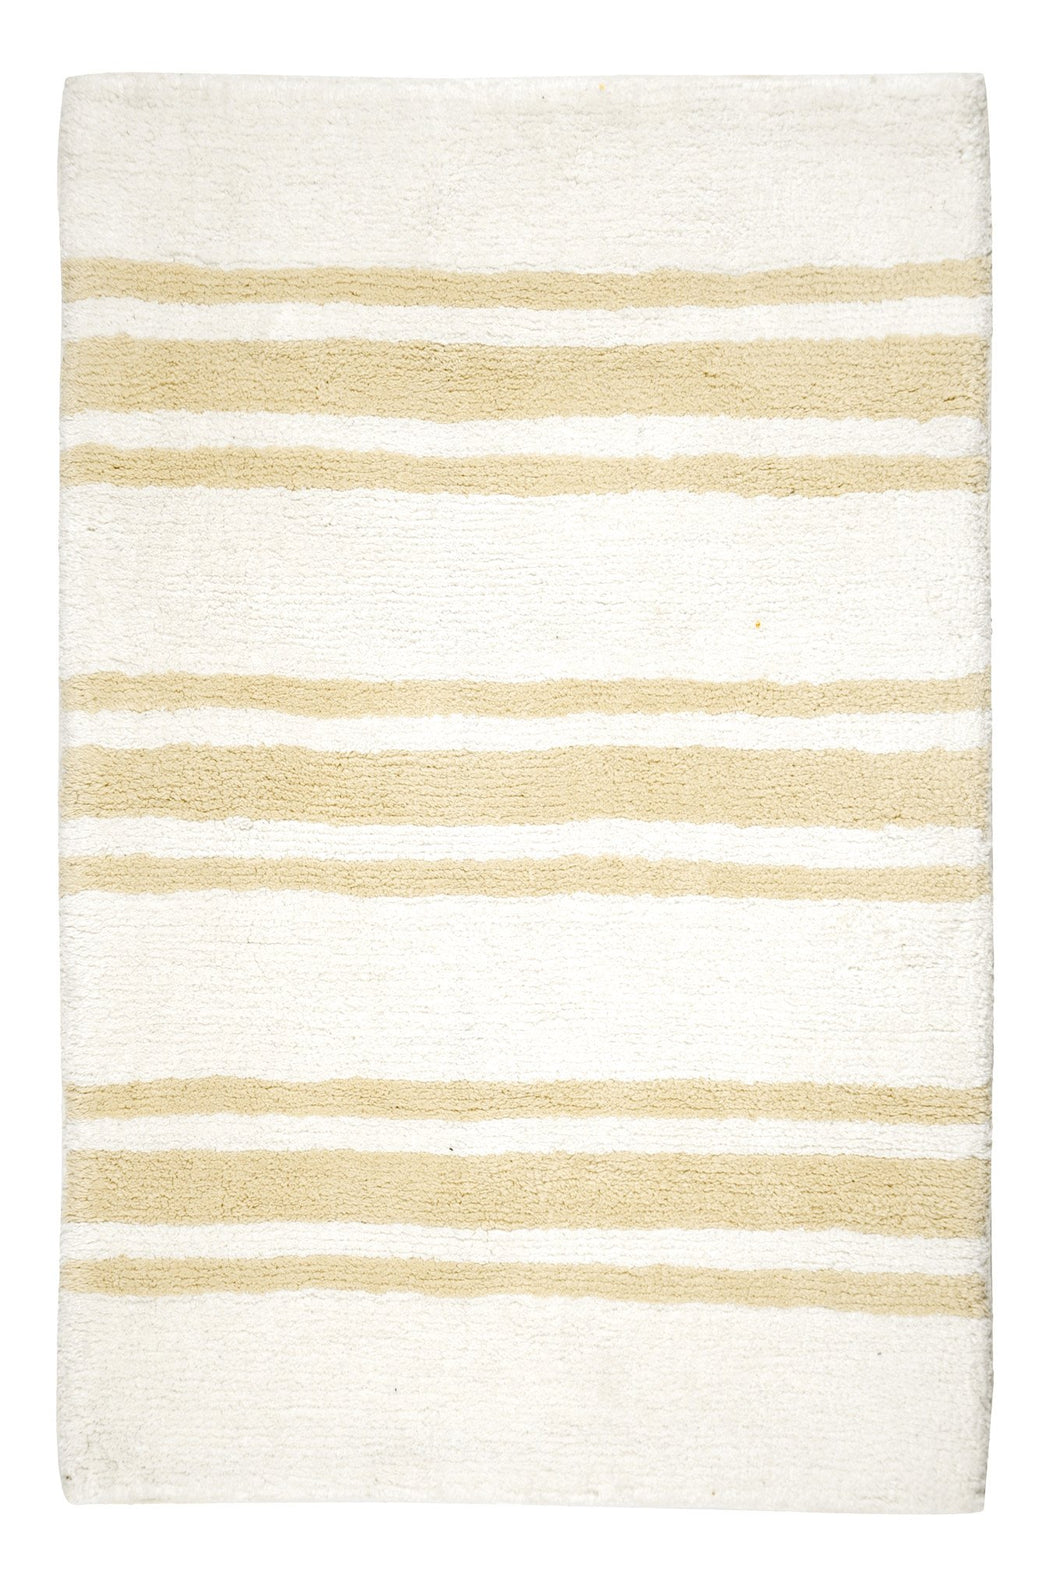 Stripe Beige Large Bath Carpet - Departures & Arrivals